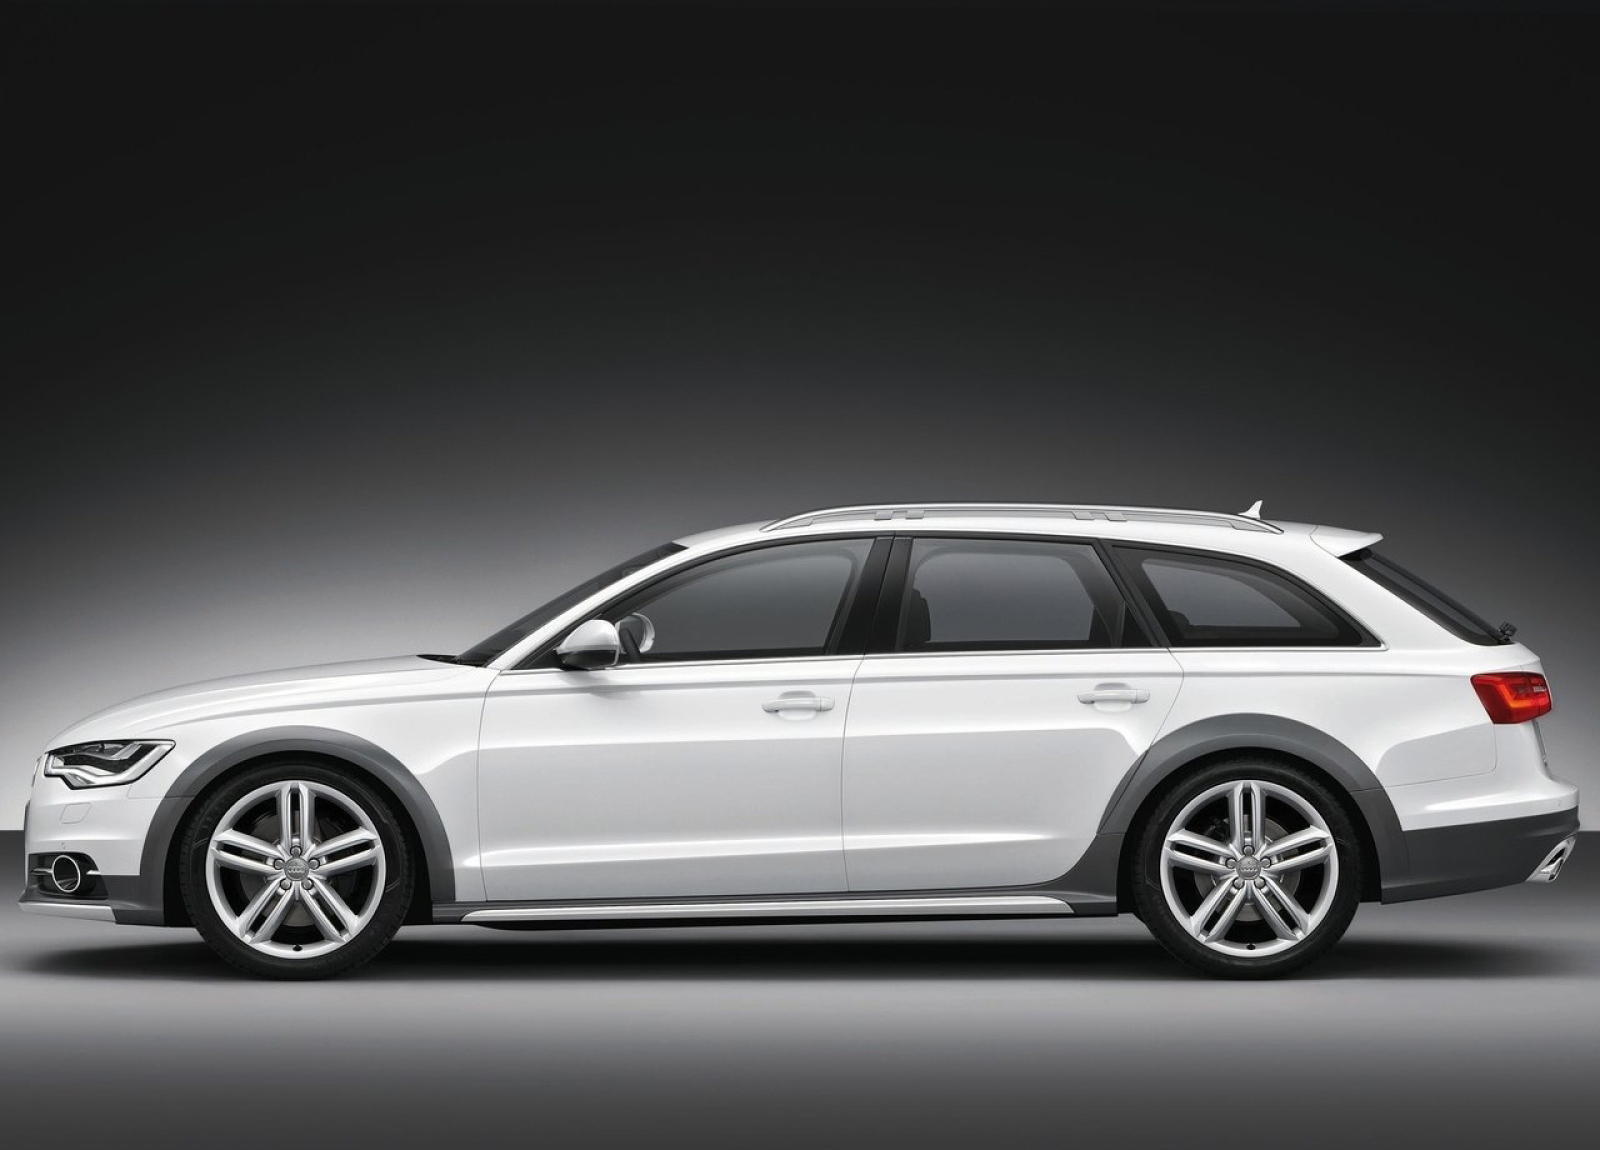 Audi A6 Allroad Hd Wallpapers The World Of Audi